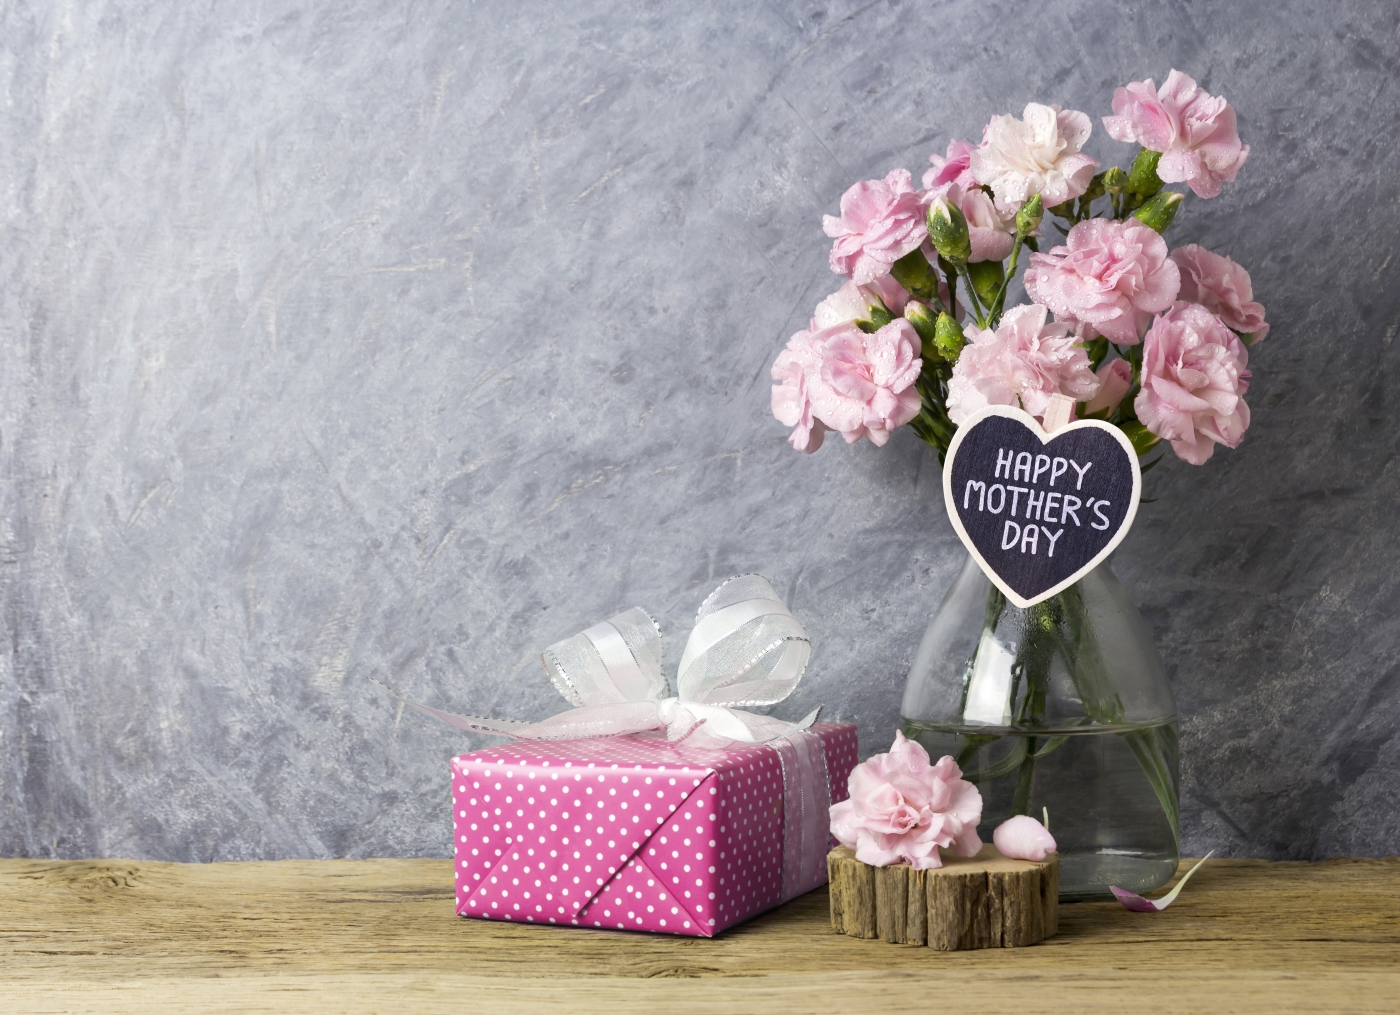 If you're down on funds and need inexpensive Mother's Day gift ideas, here are our top five choices!